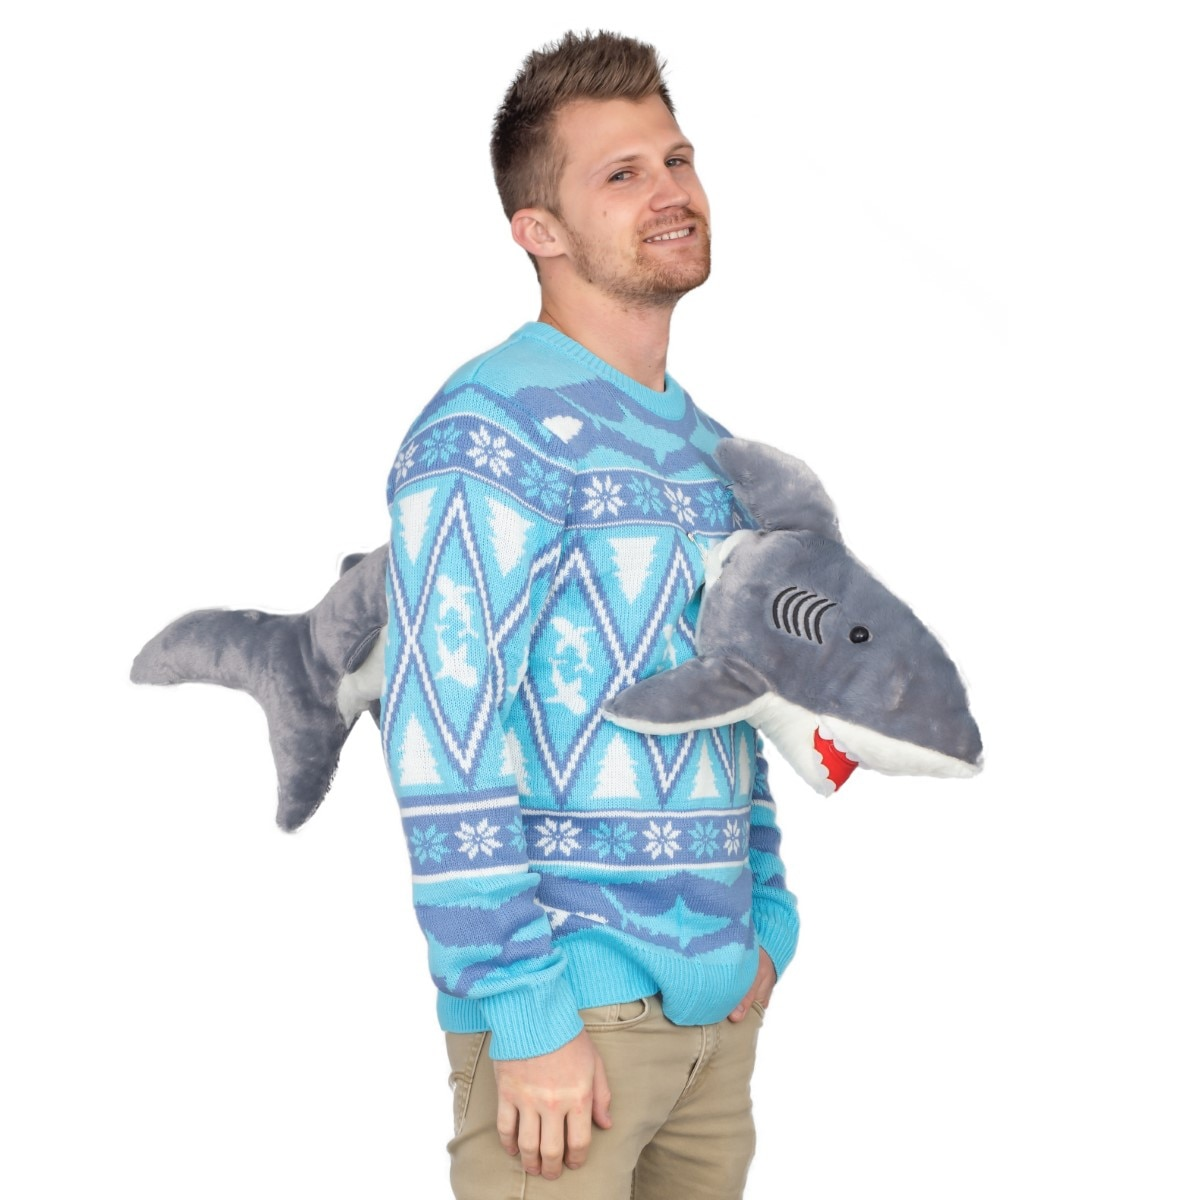 3D Shark Plushie Ugly Christmas Sweater 2 - Dread's Gift Guide: Ugly Xmas Sweaters